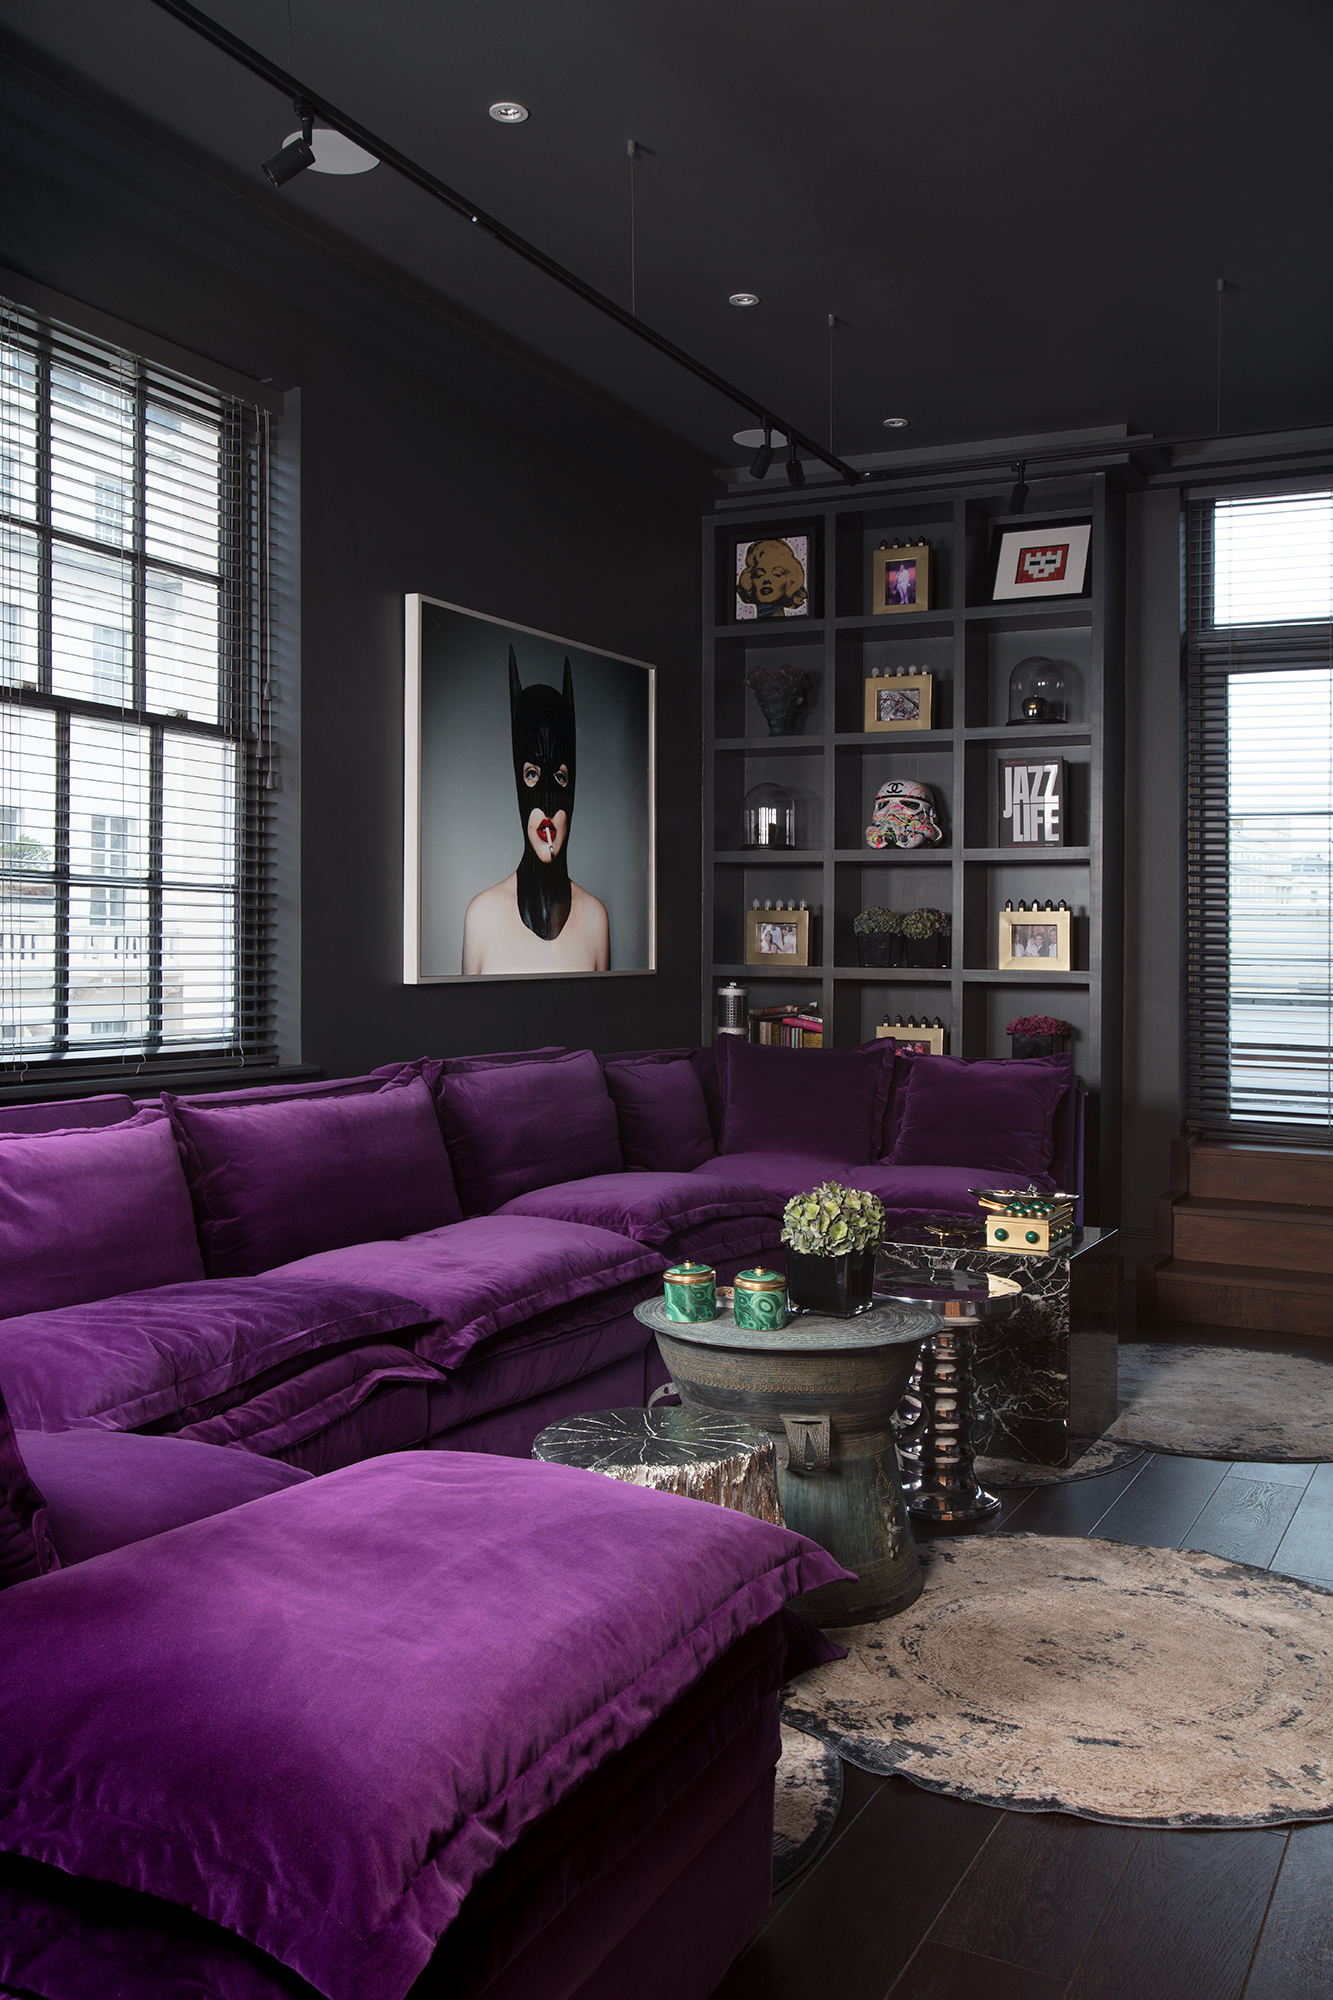 moody interior decor image by Southern Whispers | Purple ...